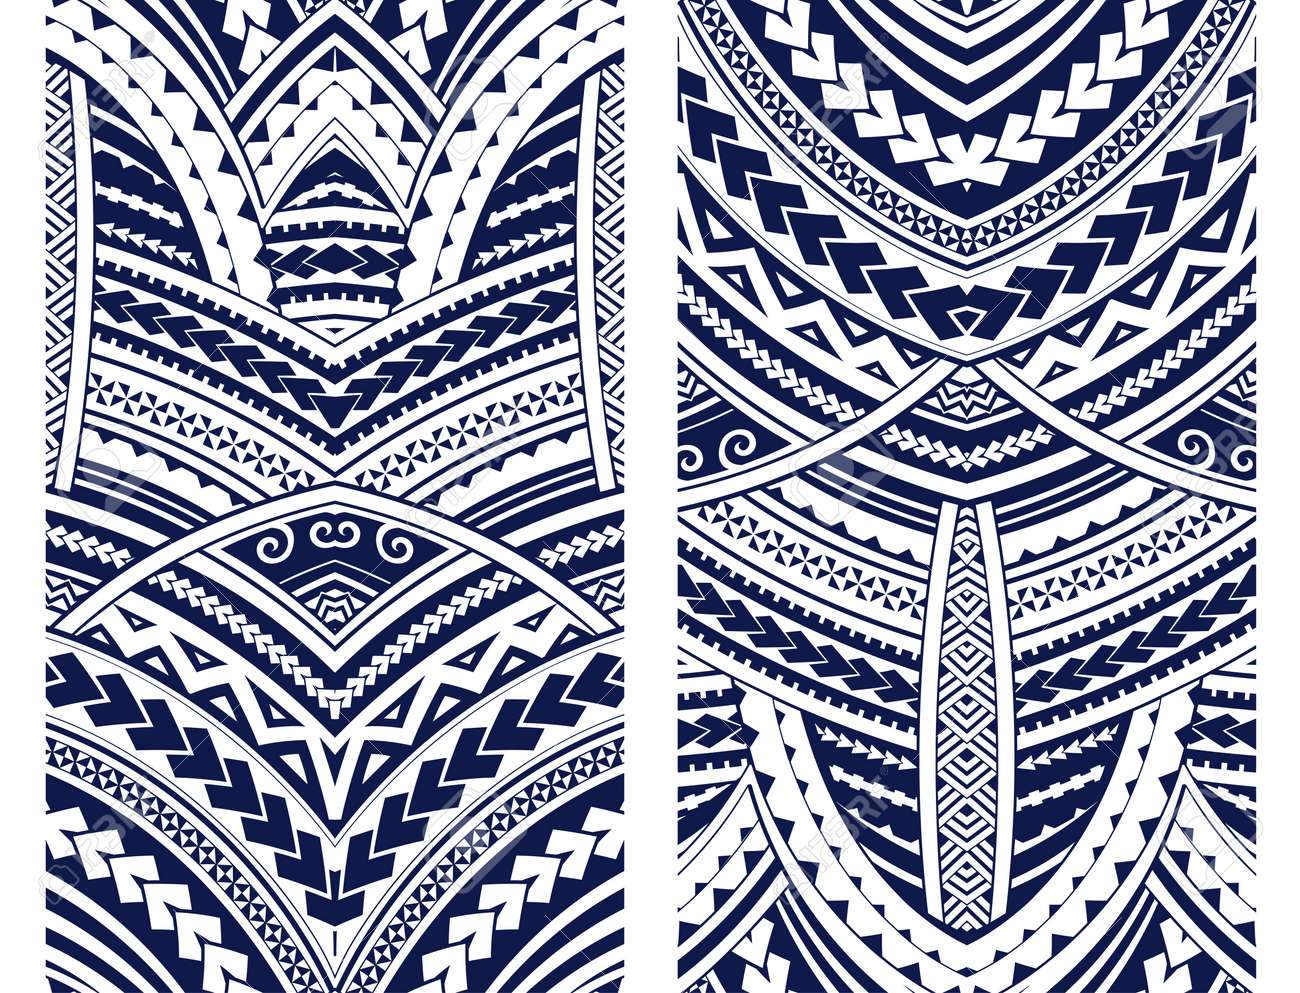 Set of Maori style ornaments. Ethnic themes can be used as body sleeve tattoo or ethnic backdrop. - 84146591